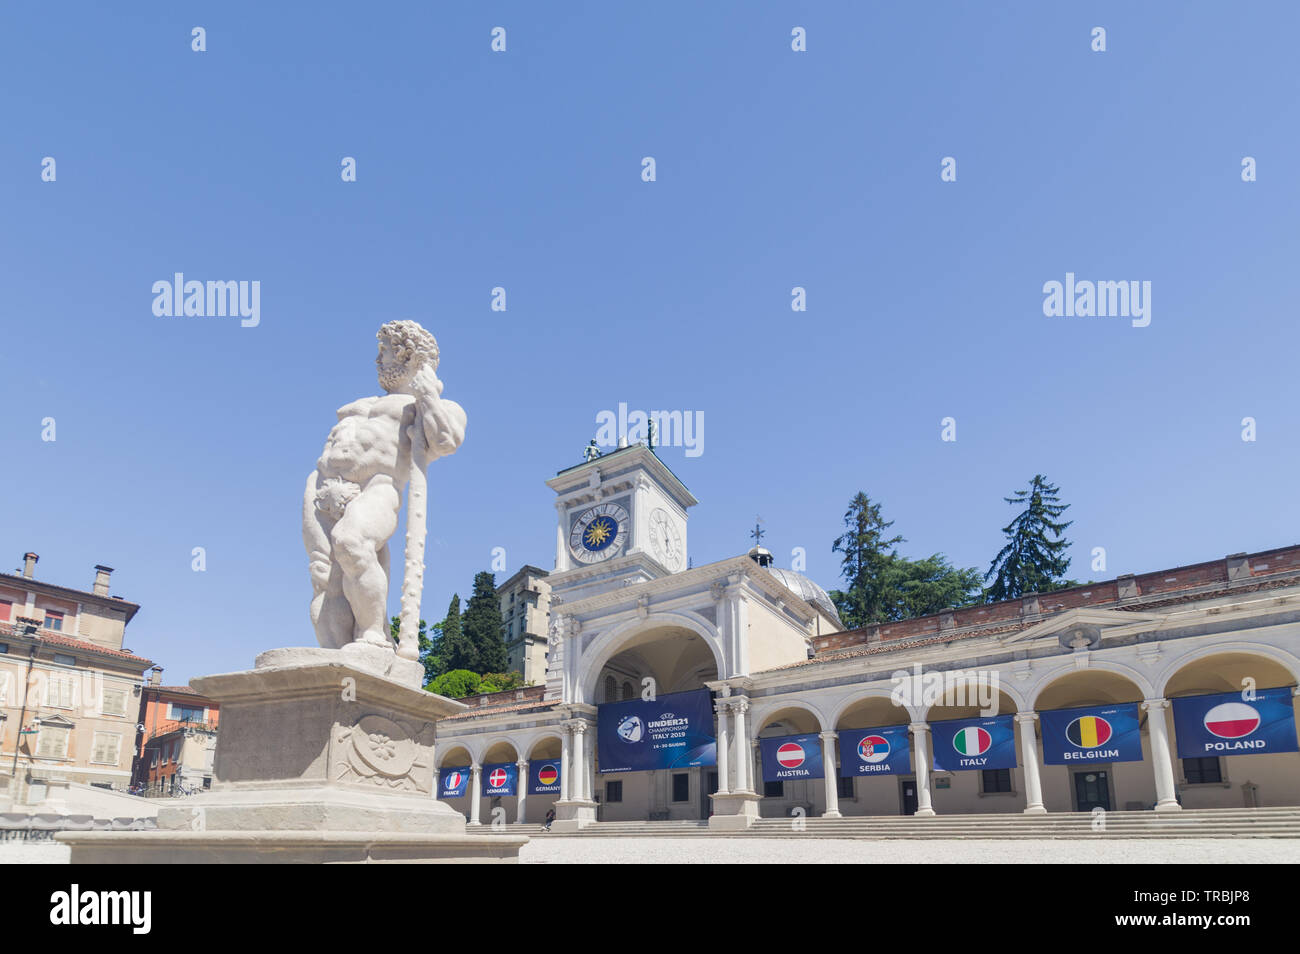 Udine, Italy  - Piazza della Libertà (Freedom Square) with the hanging flags of the nations of the 2019 U21 European football championship - Stock Image